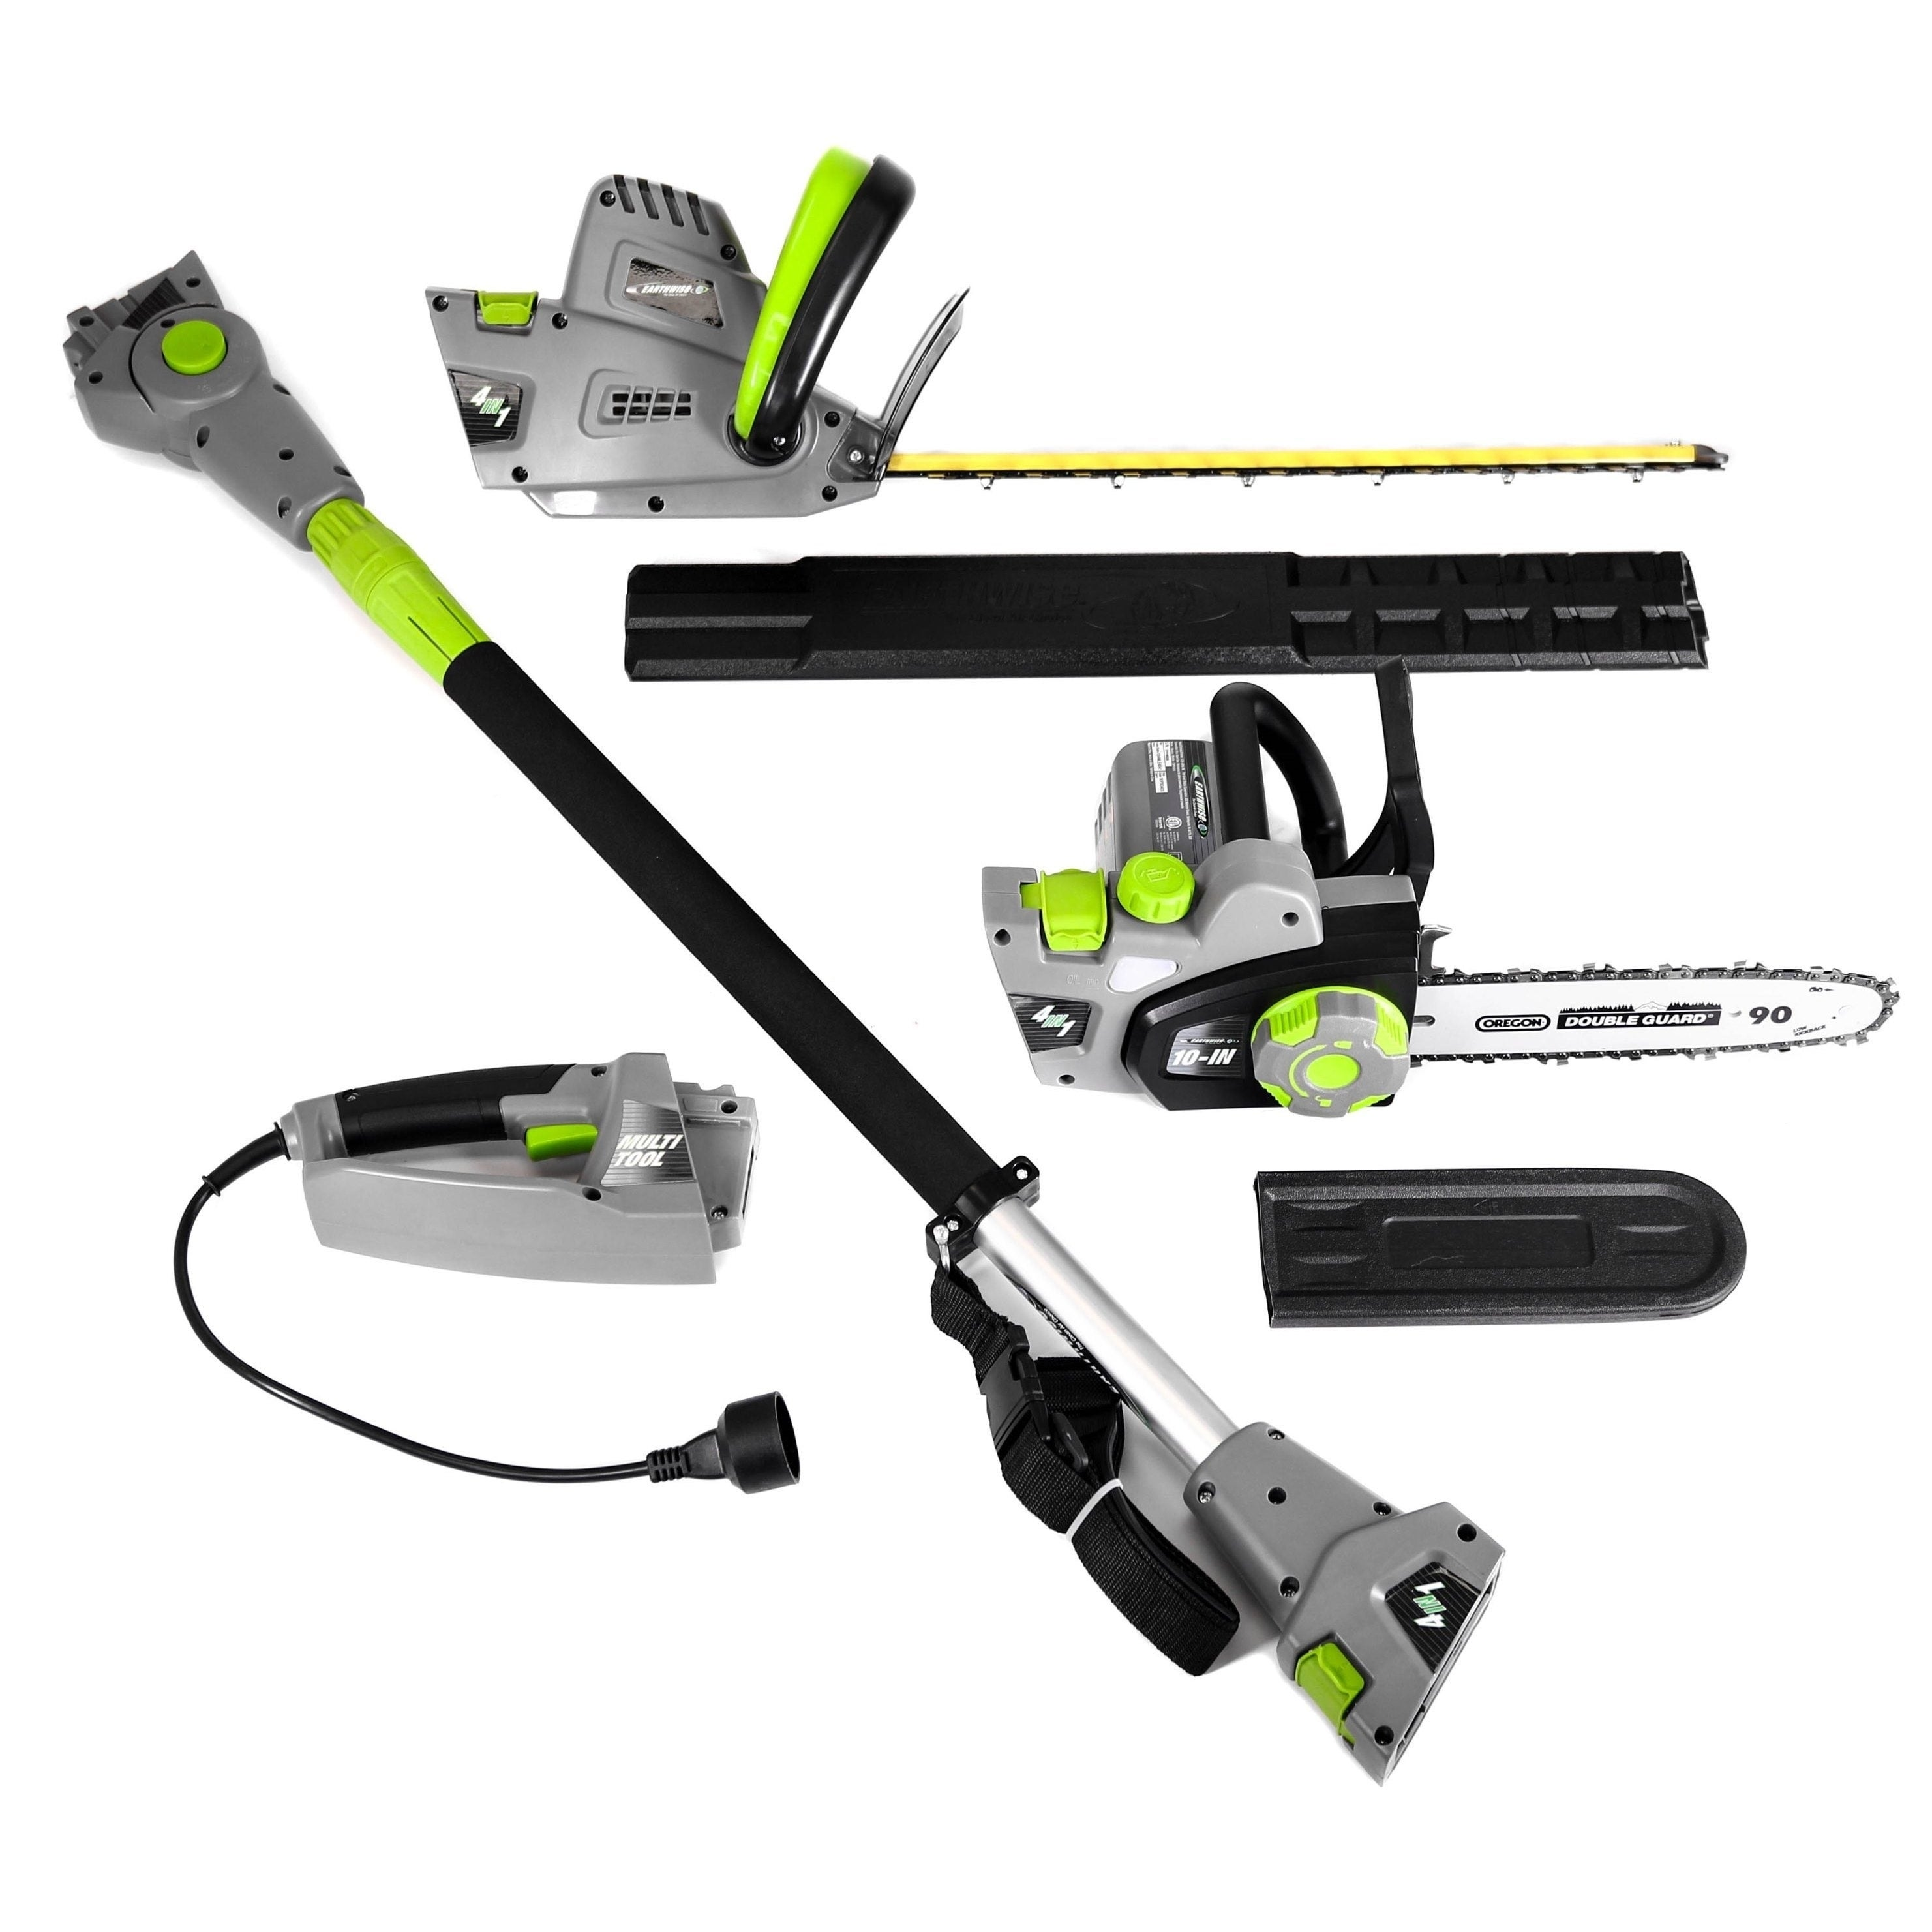 Esselte 4-in-1 Electric Chainsaw with Pole Saw, Hedge Tri...